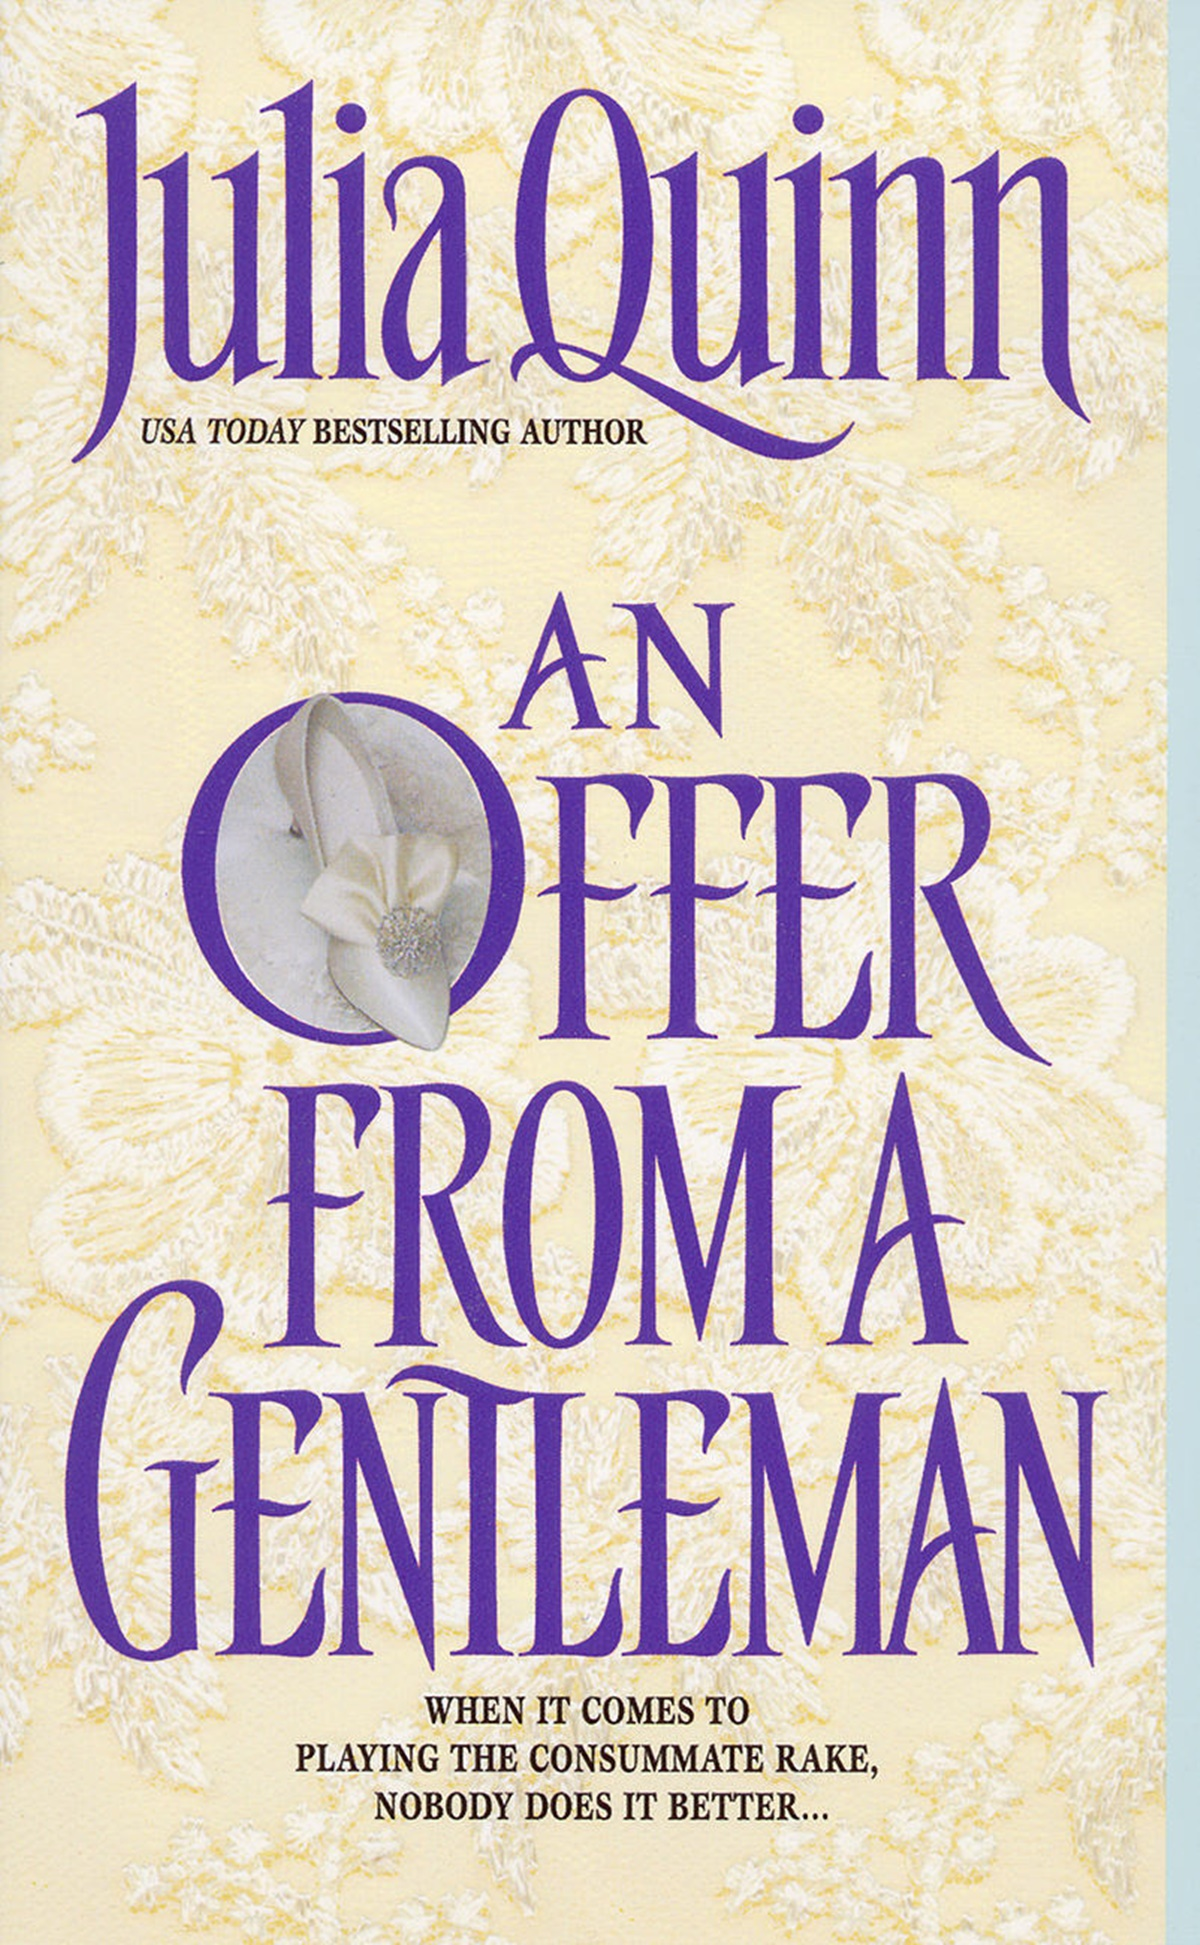 Julia Quinn Books, cover of An Offer From A Gentleman by Julia Quinn, books